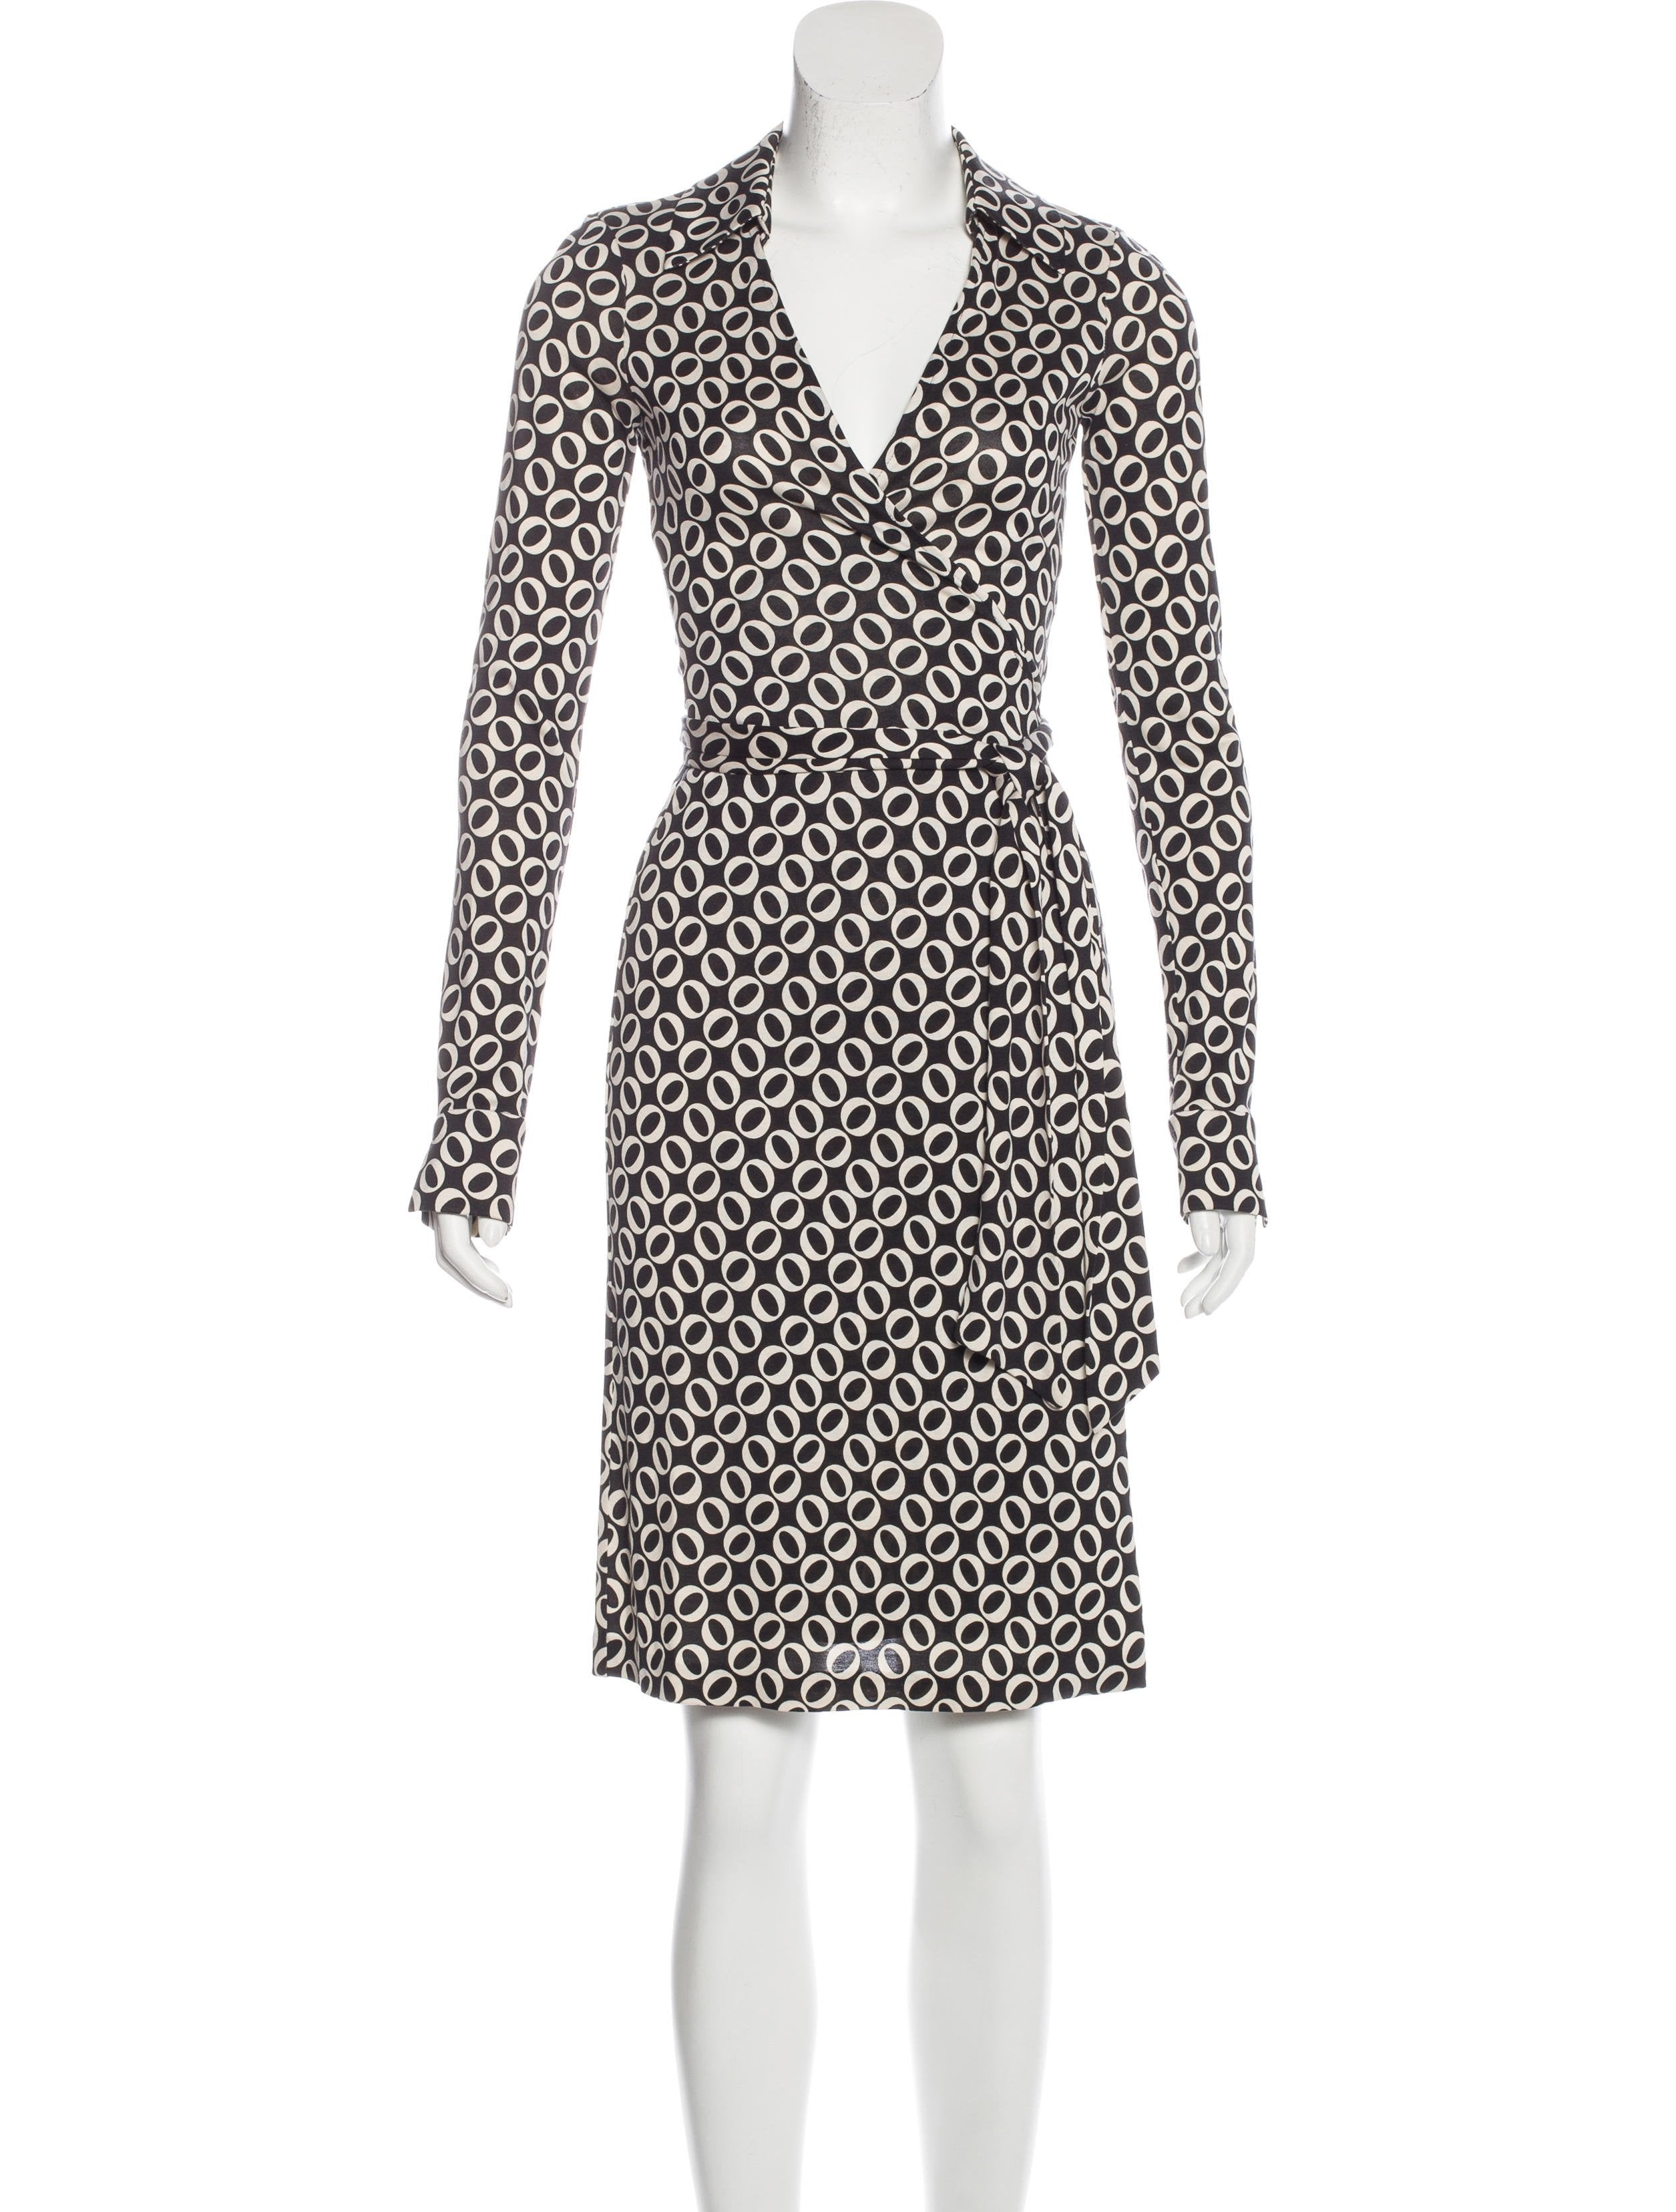 Diane von furstenberg jeanne wrap dress clothing for Diane von furstenberg clothes